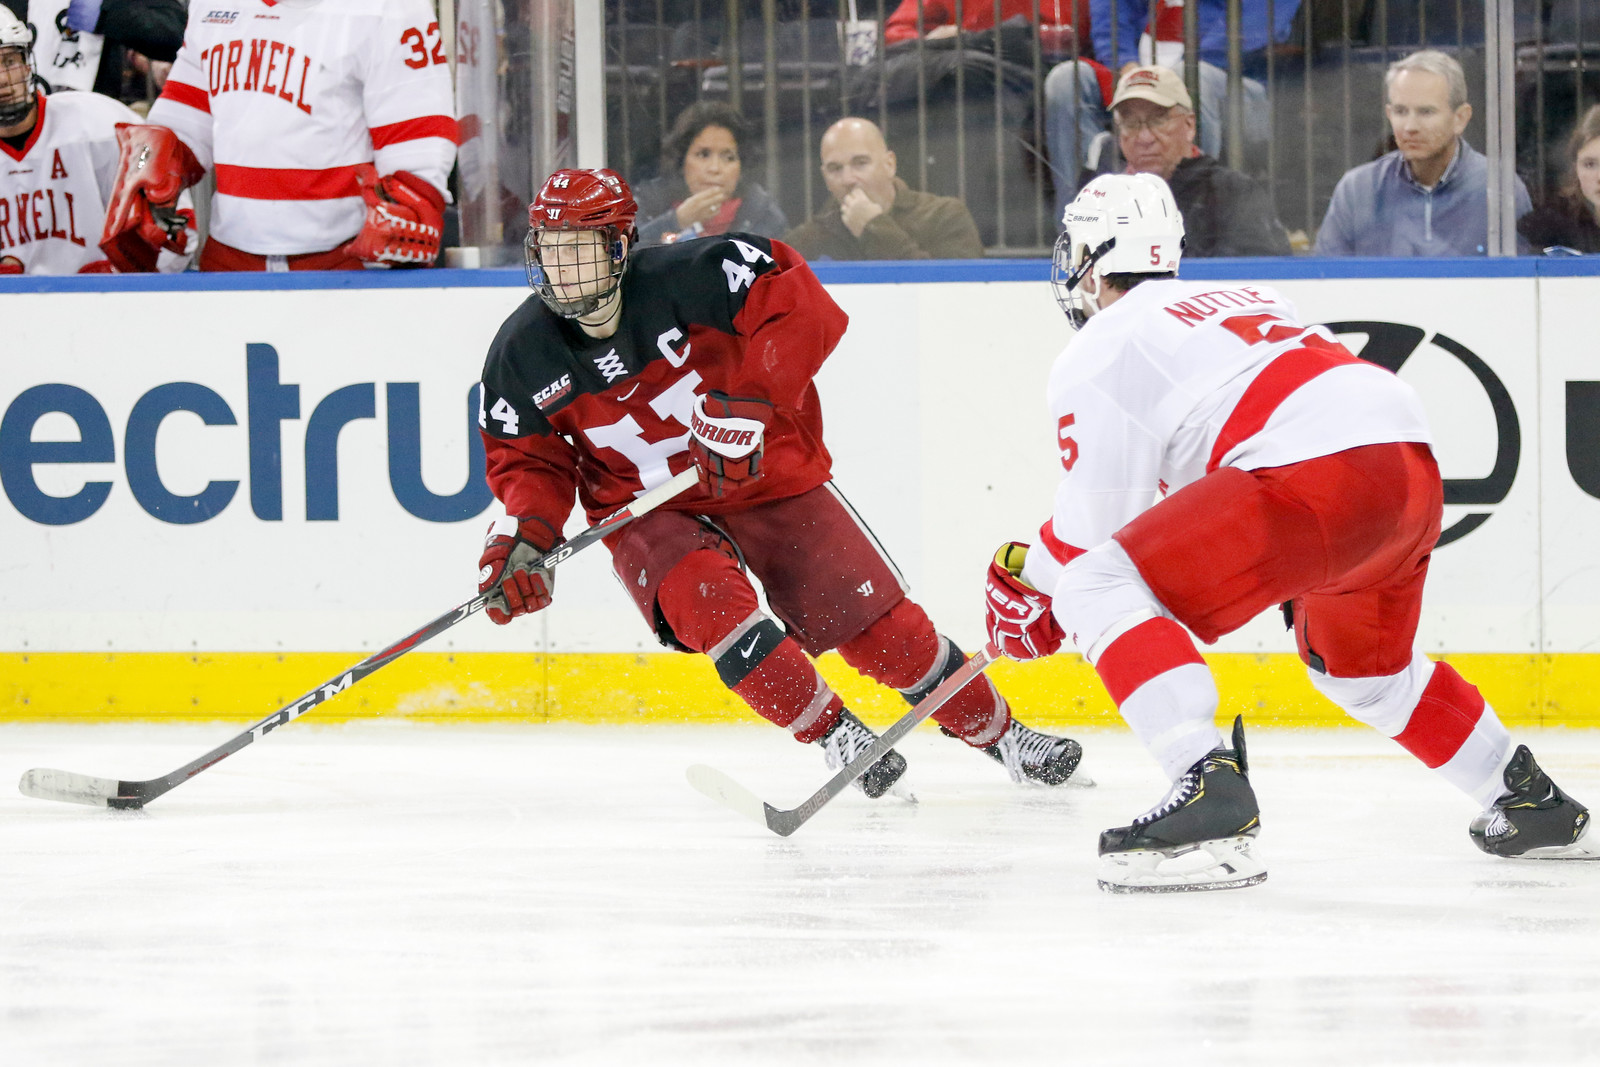 The Crimson and the Big Red will clash for a third time this season when Harvard visits Cornell this Friday.